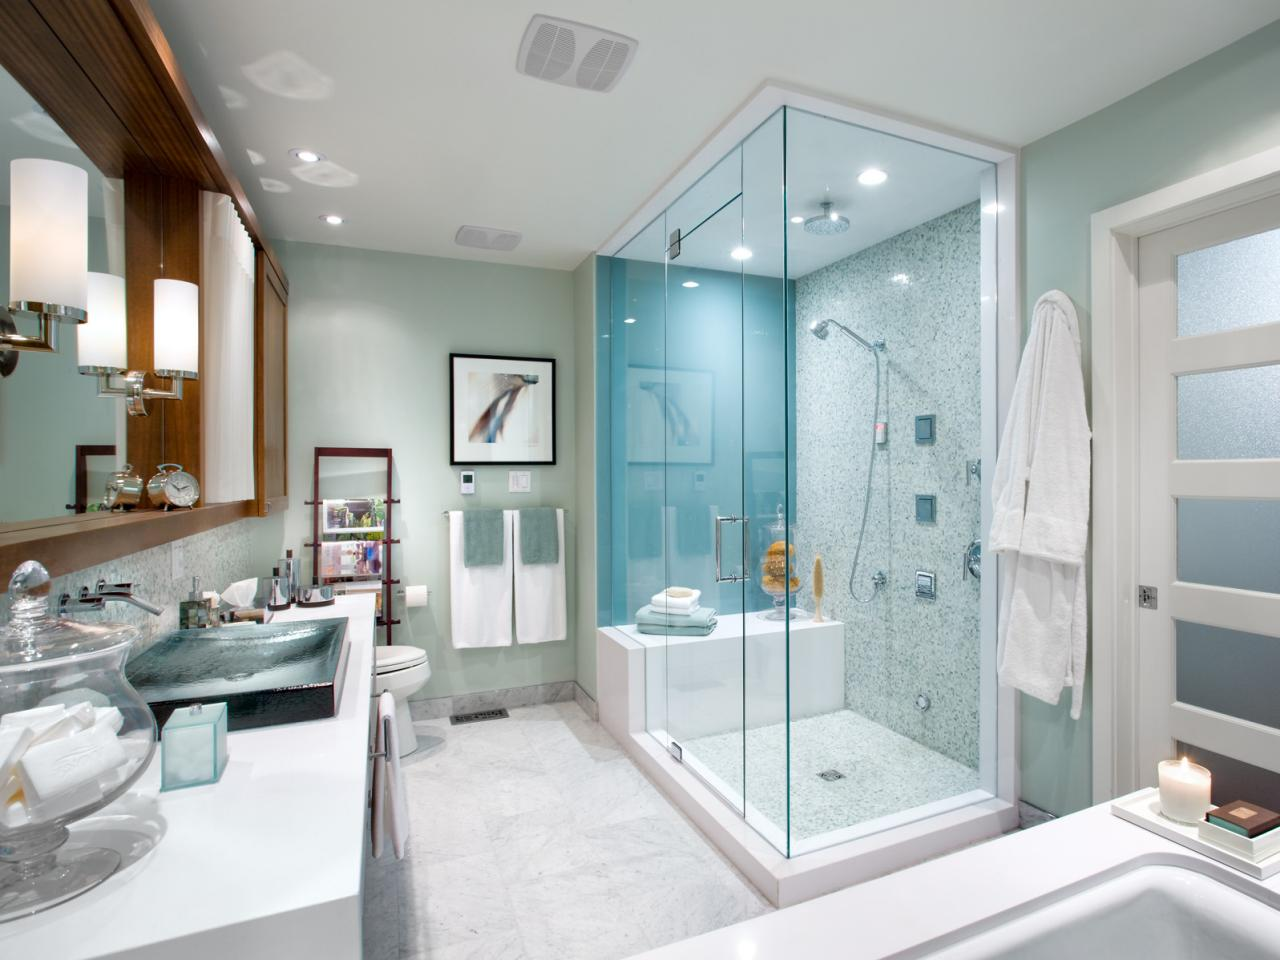 Bathroom remodeling ideas on a budget that are budget Remodeling your bathroom on a budget